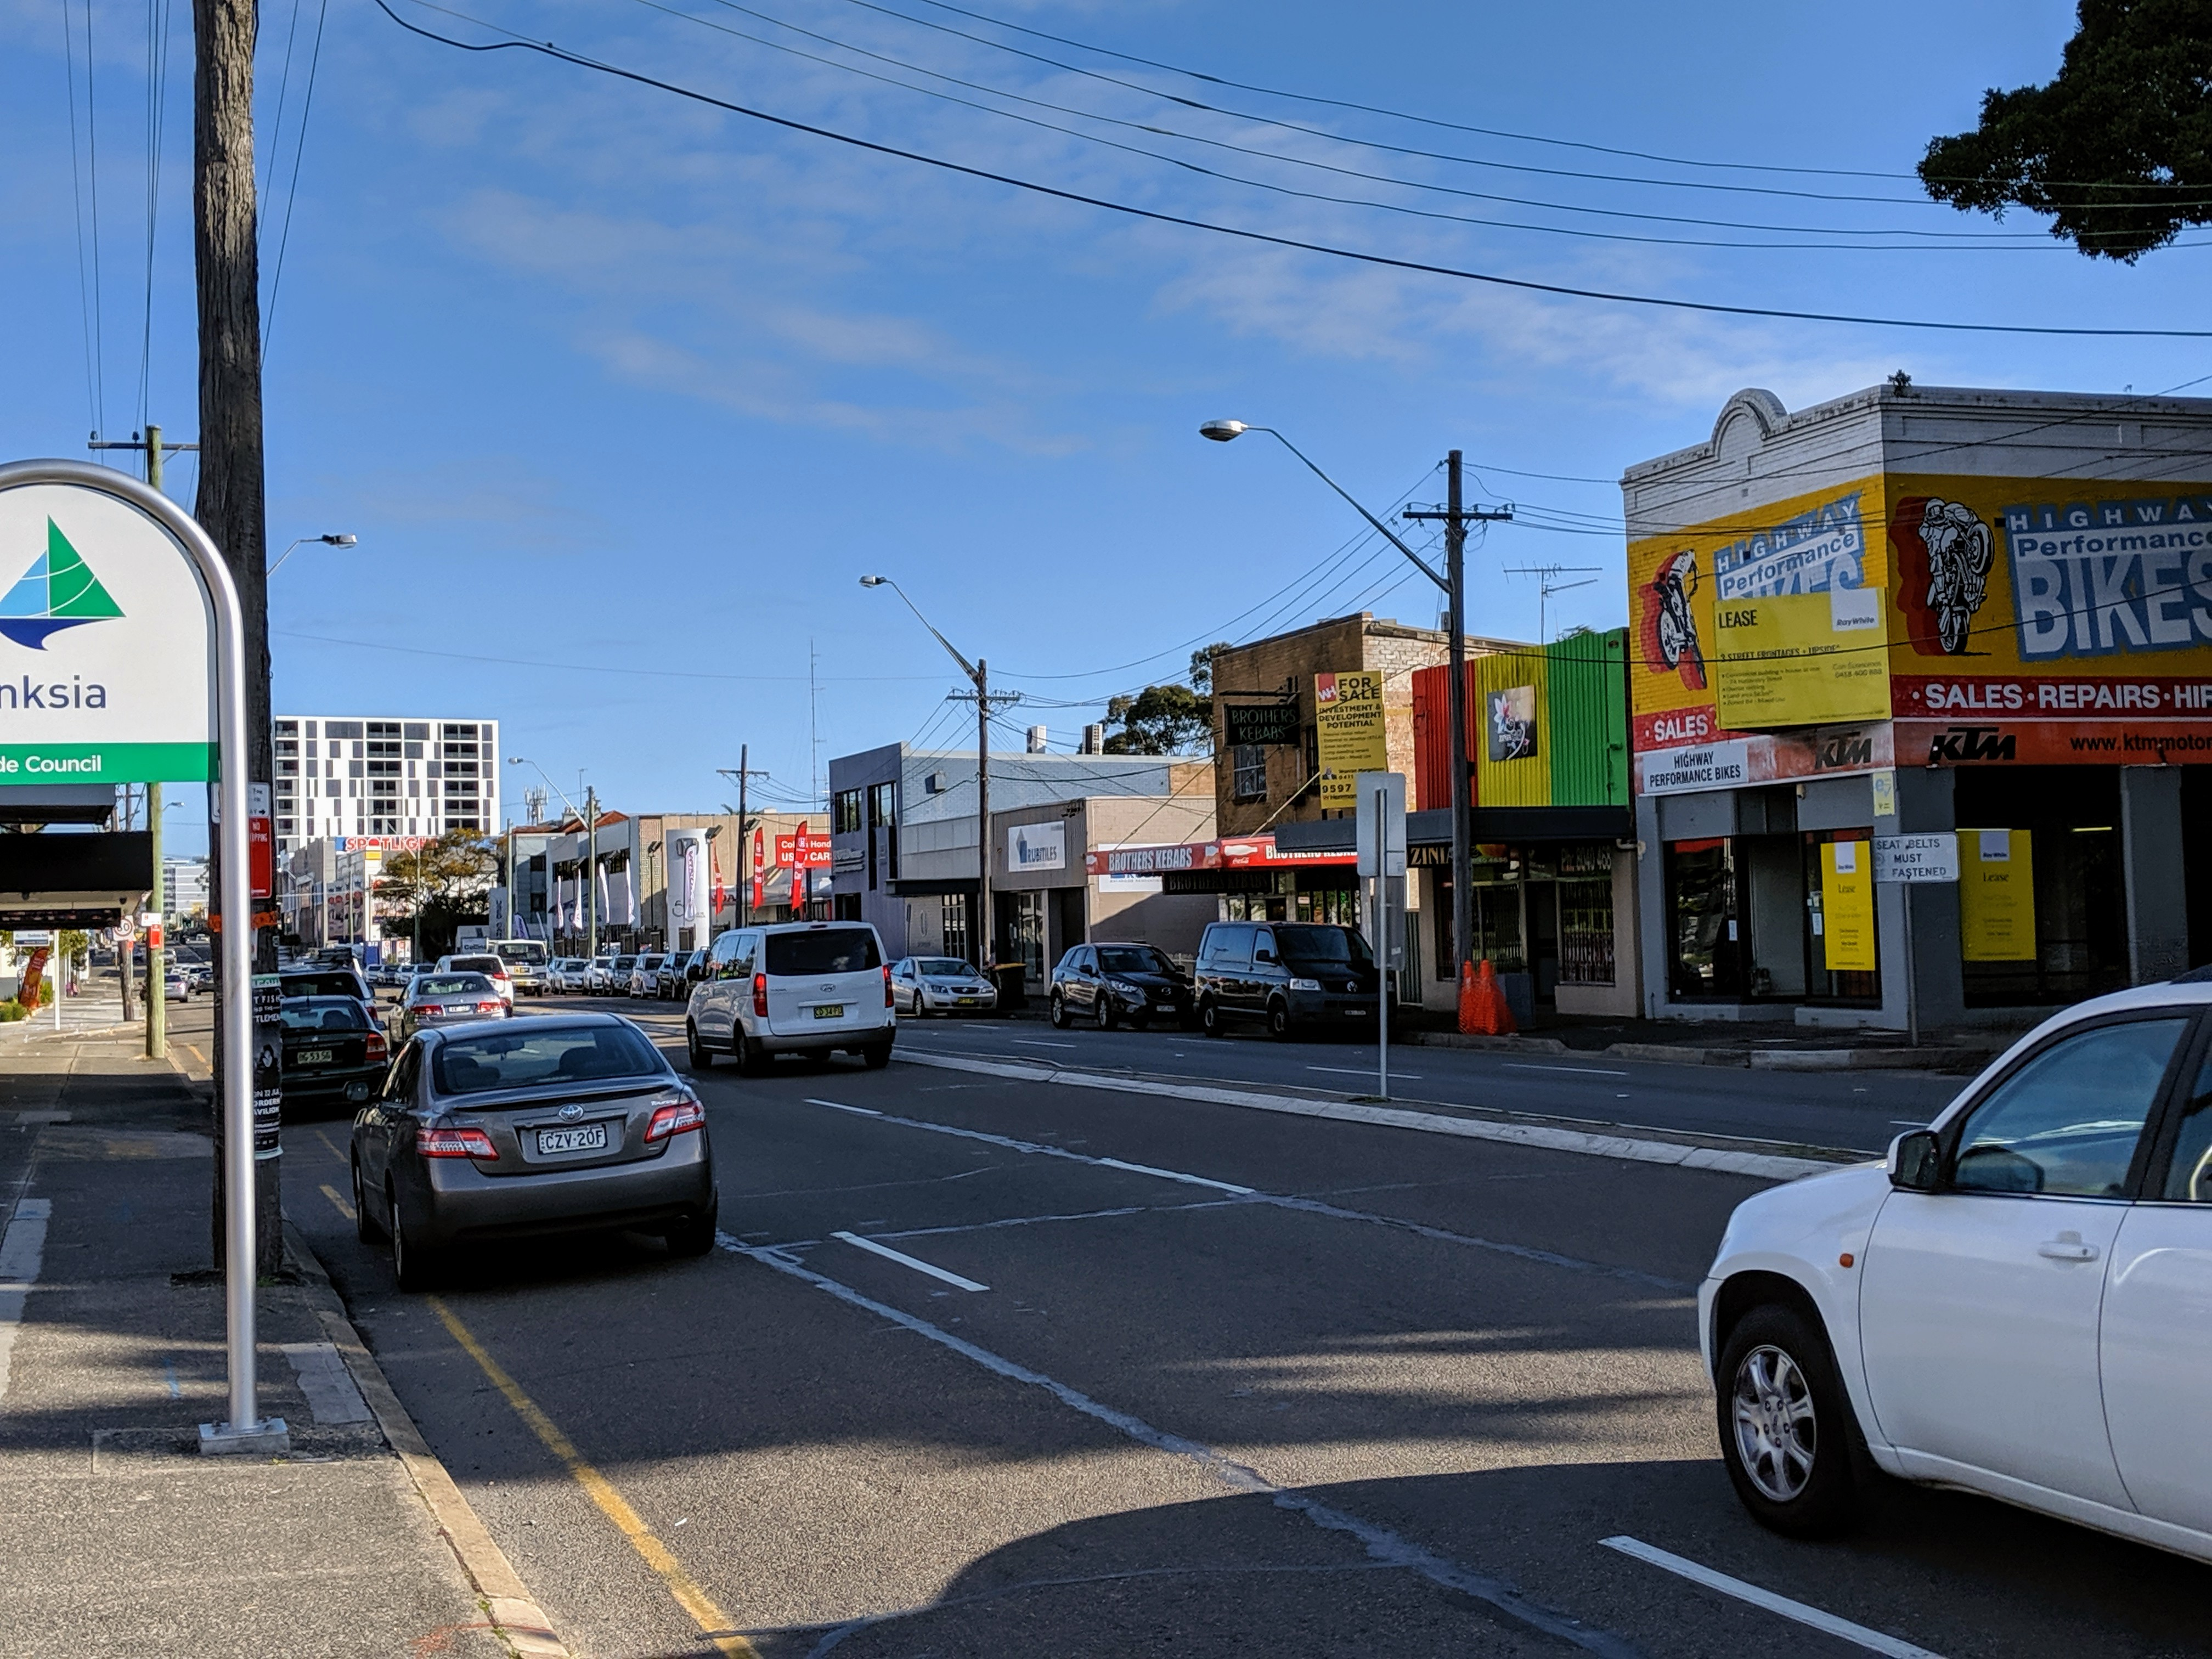 Banksmeadow Postcode - Get the postcode for Banksmeadow NSW in Sydney and search for other places in New South Wales - Qpzm   Postcodes BANKSMEADOW Postcode NSW Banksmeadow is a suburb of Sydney, New South Wales and